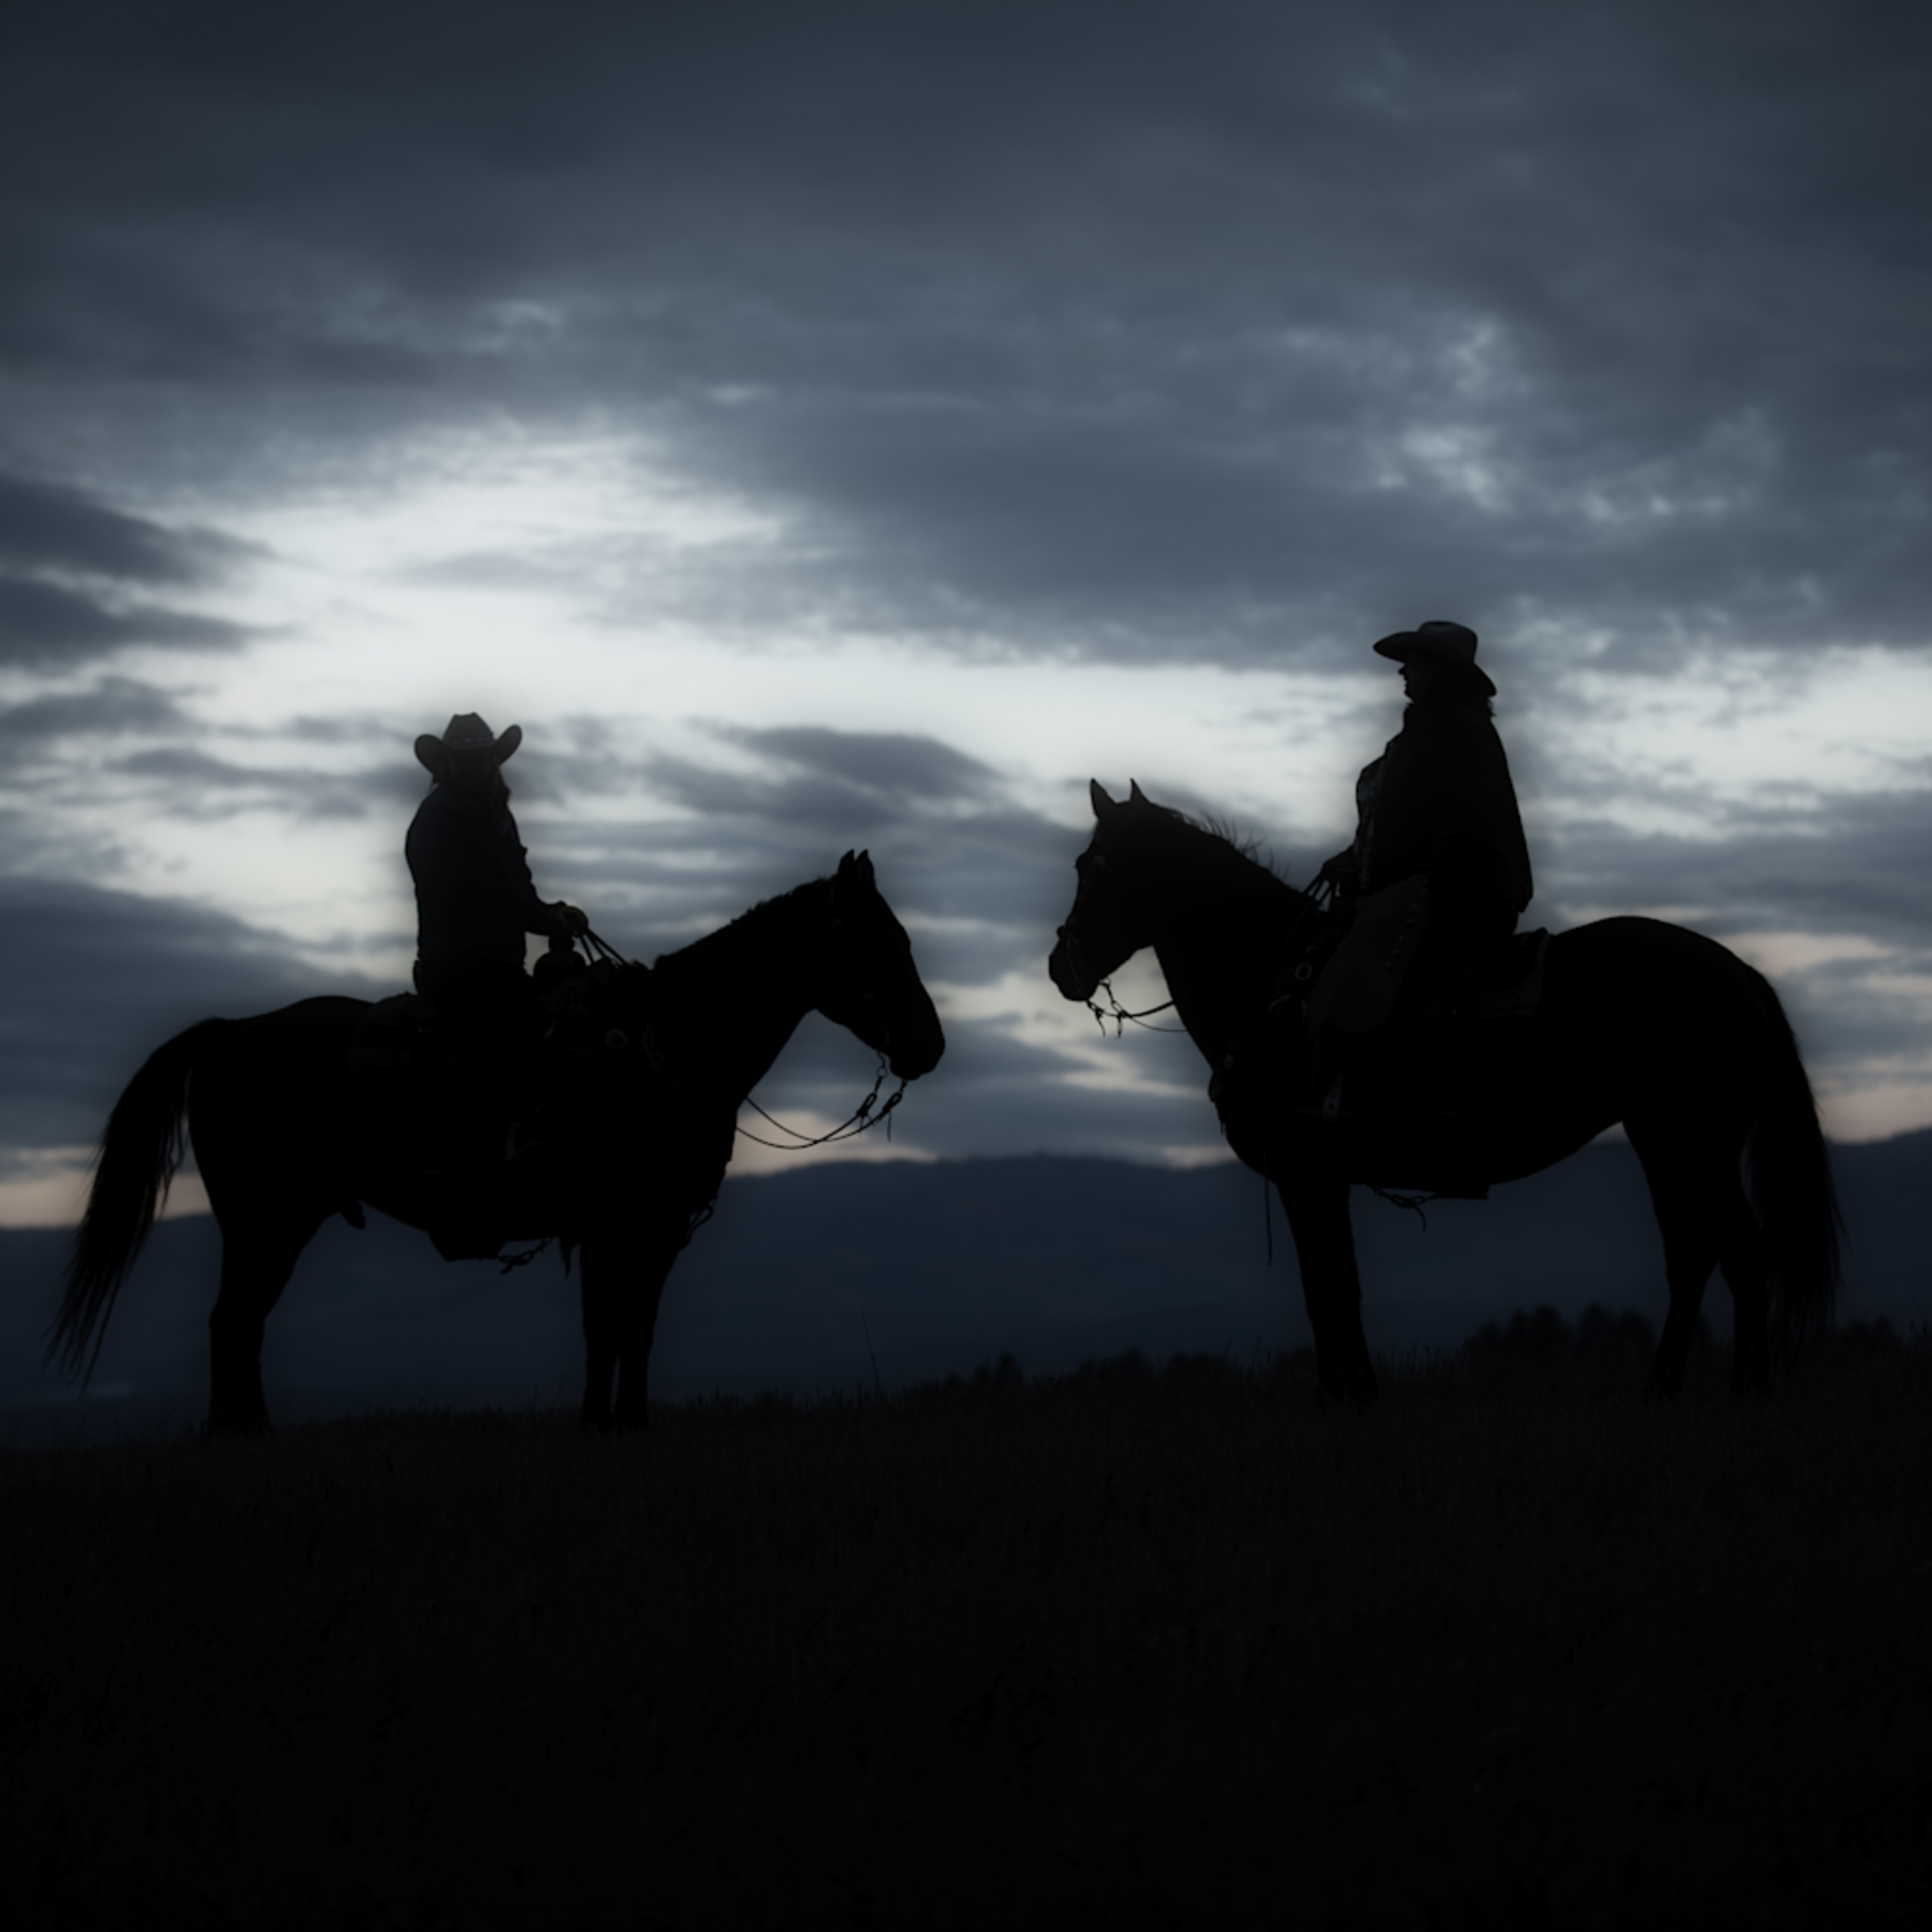 Horse and wrangler silhouete isawto